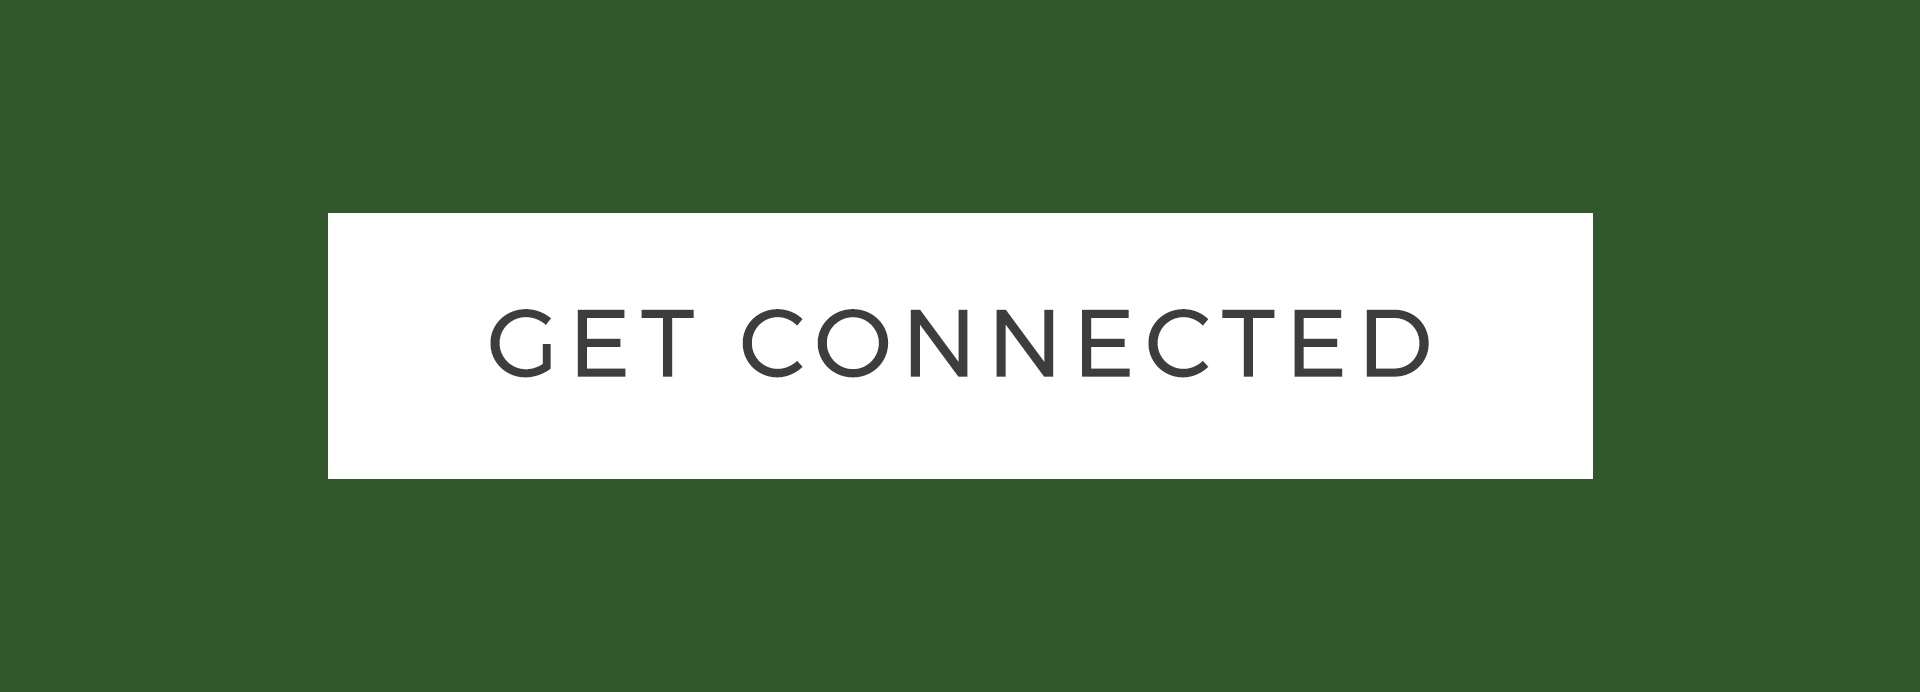 Get Connected 1920x692.jpg